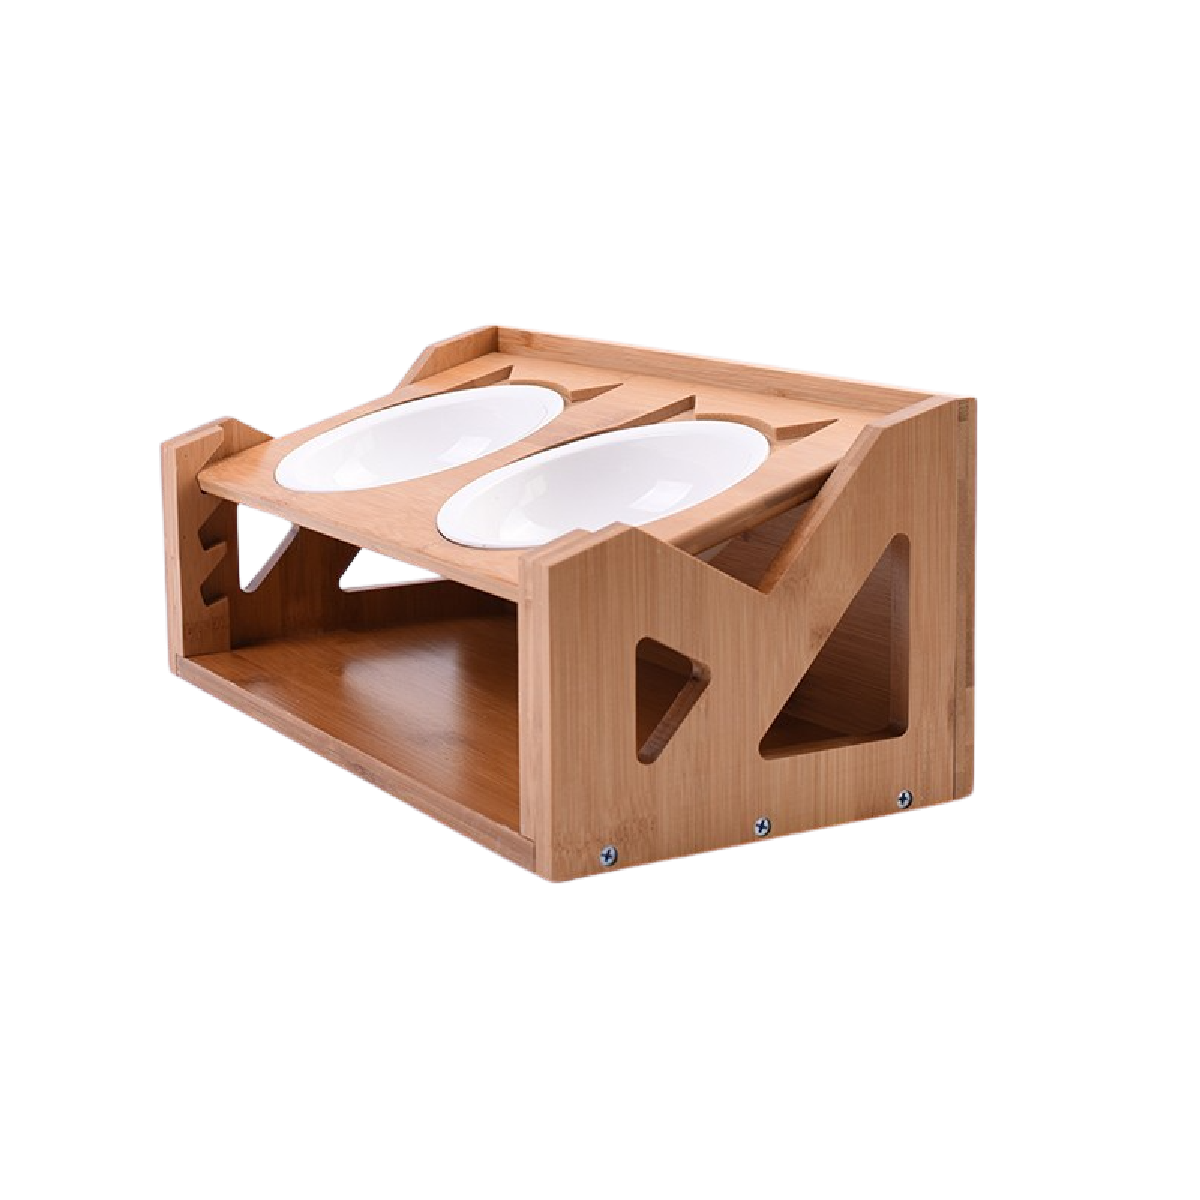 Premium Quality Adjustable Elevated Cat and Small Dog Dining Table, Titled Angle Raised Wooden Feeder with Dual Stainless Steel Bowls. Adjustable Size for Multiple Pets or Growing Pets